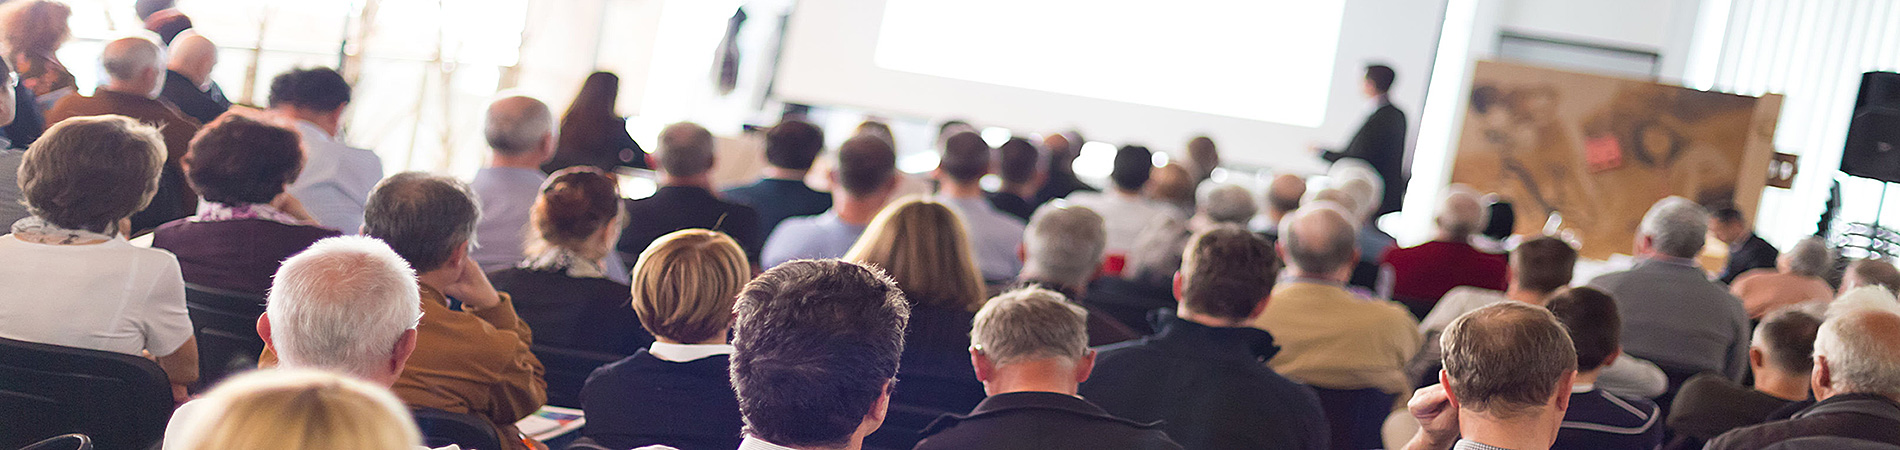 An audience attends a business event.